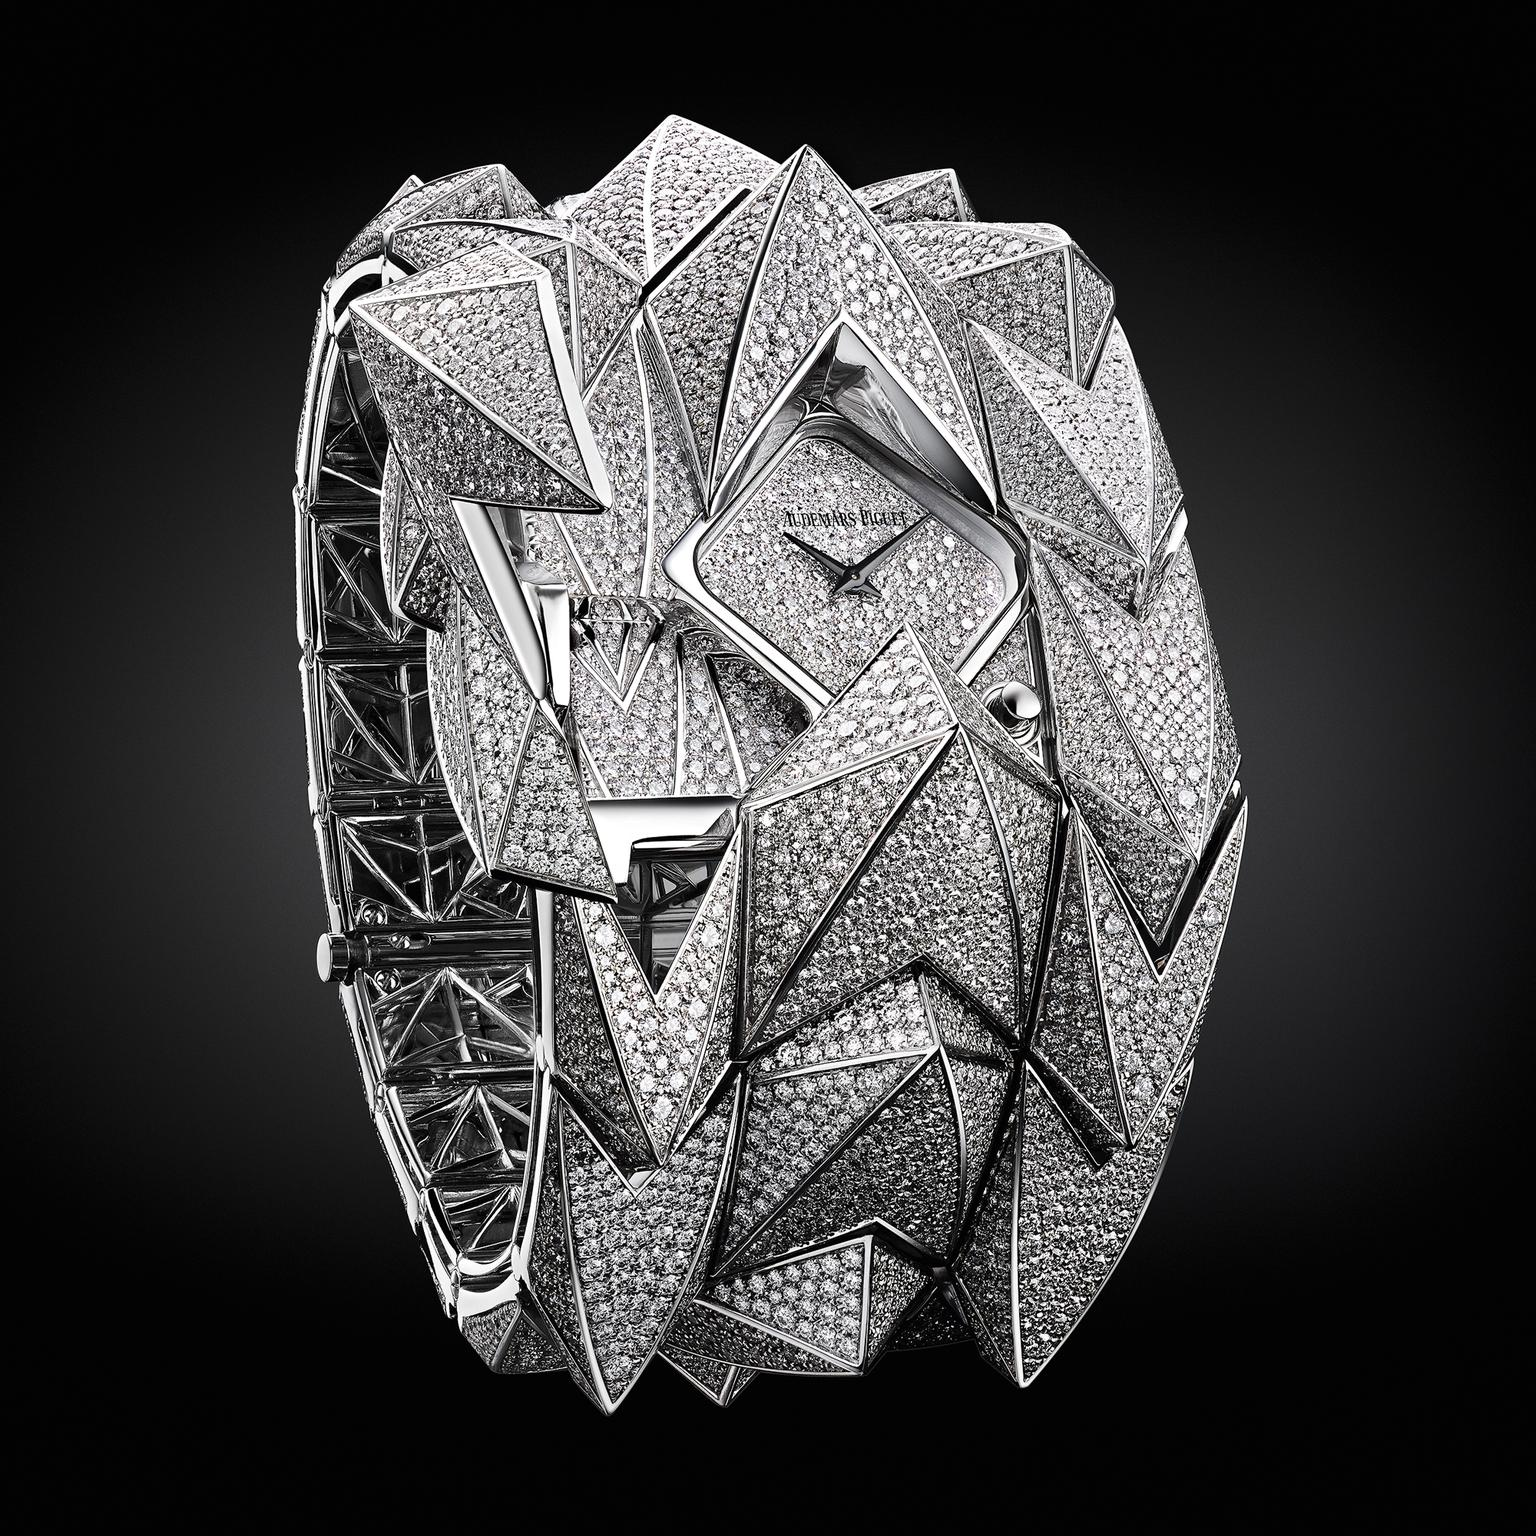 Audemars Piguet Diamond Fury watch